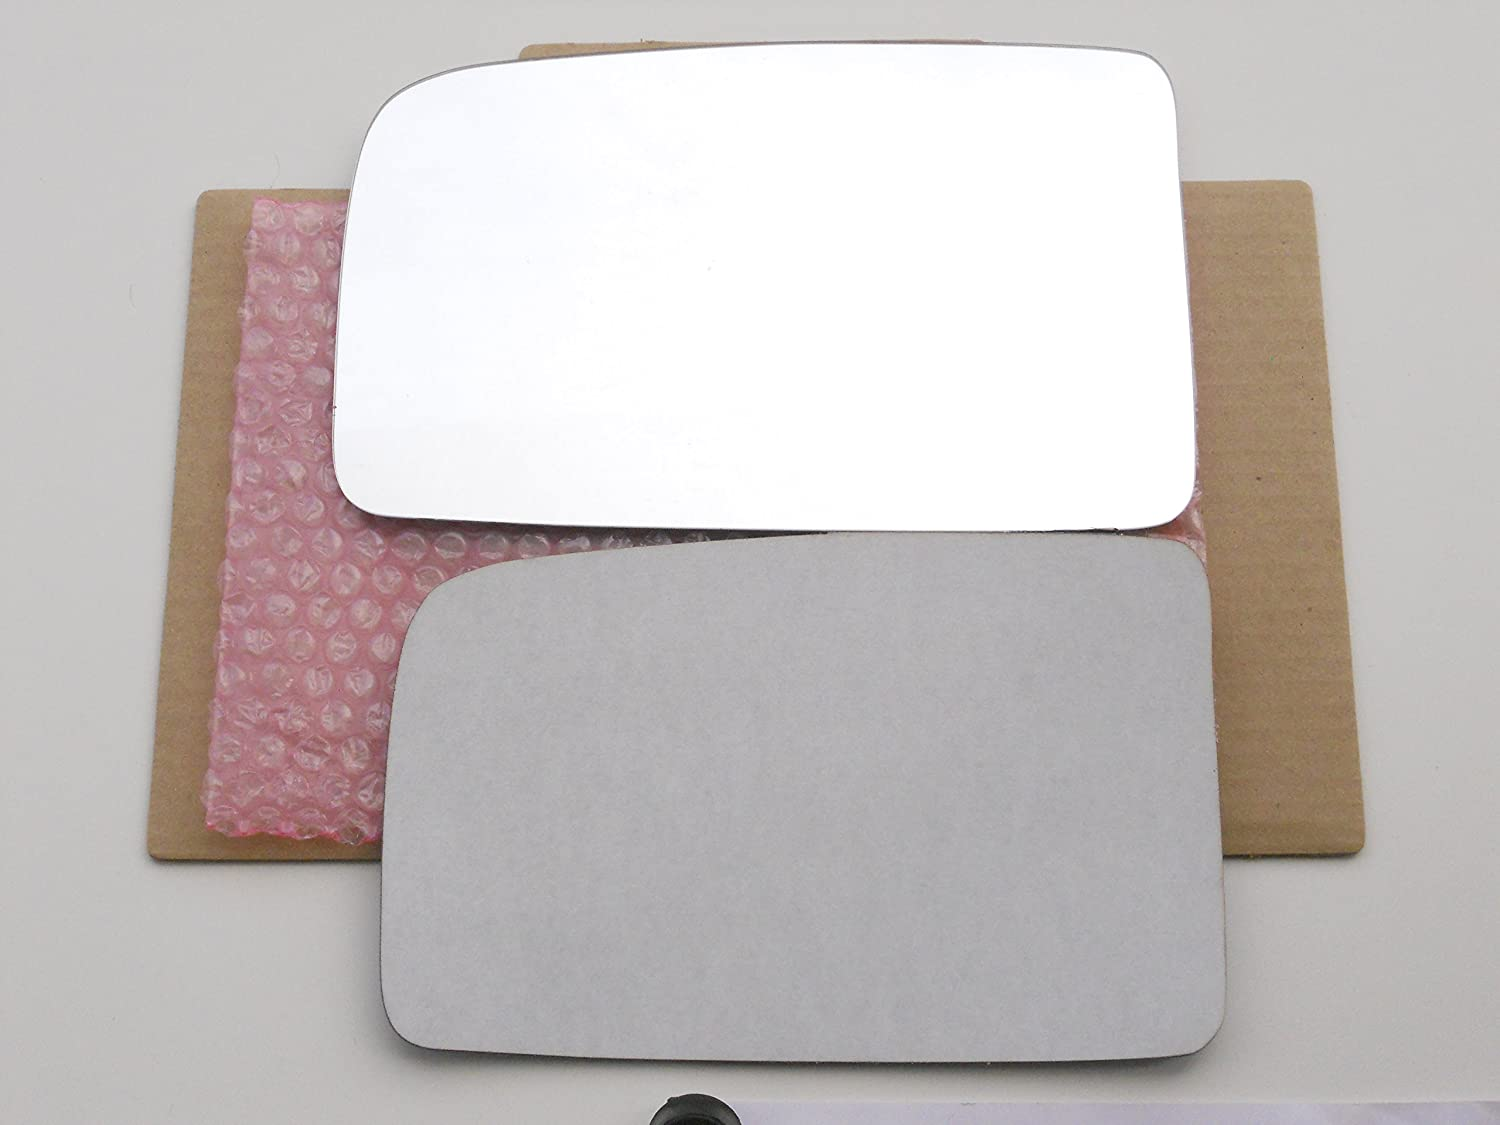 New Replacement Mirror Glass with FULL SIZE ADHESIVE for Lincoln MKT Driver Side View Left LH